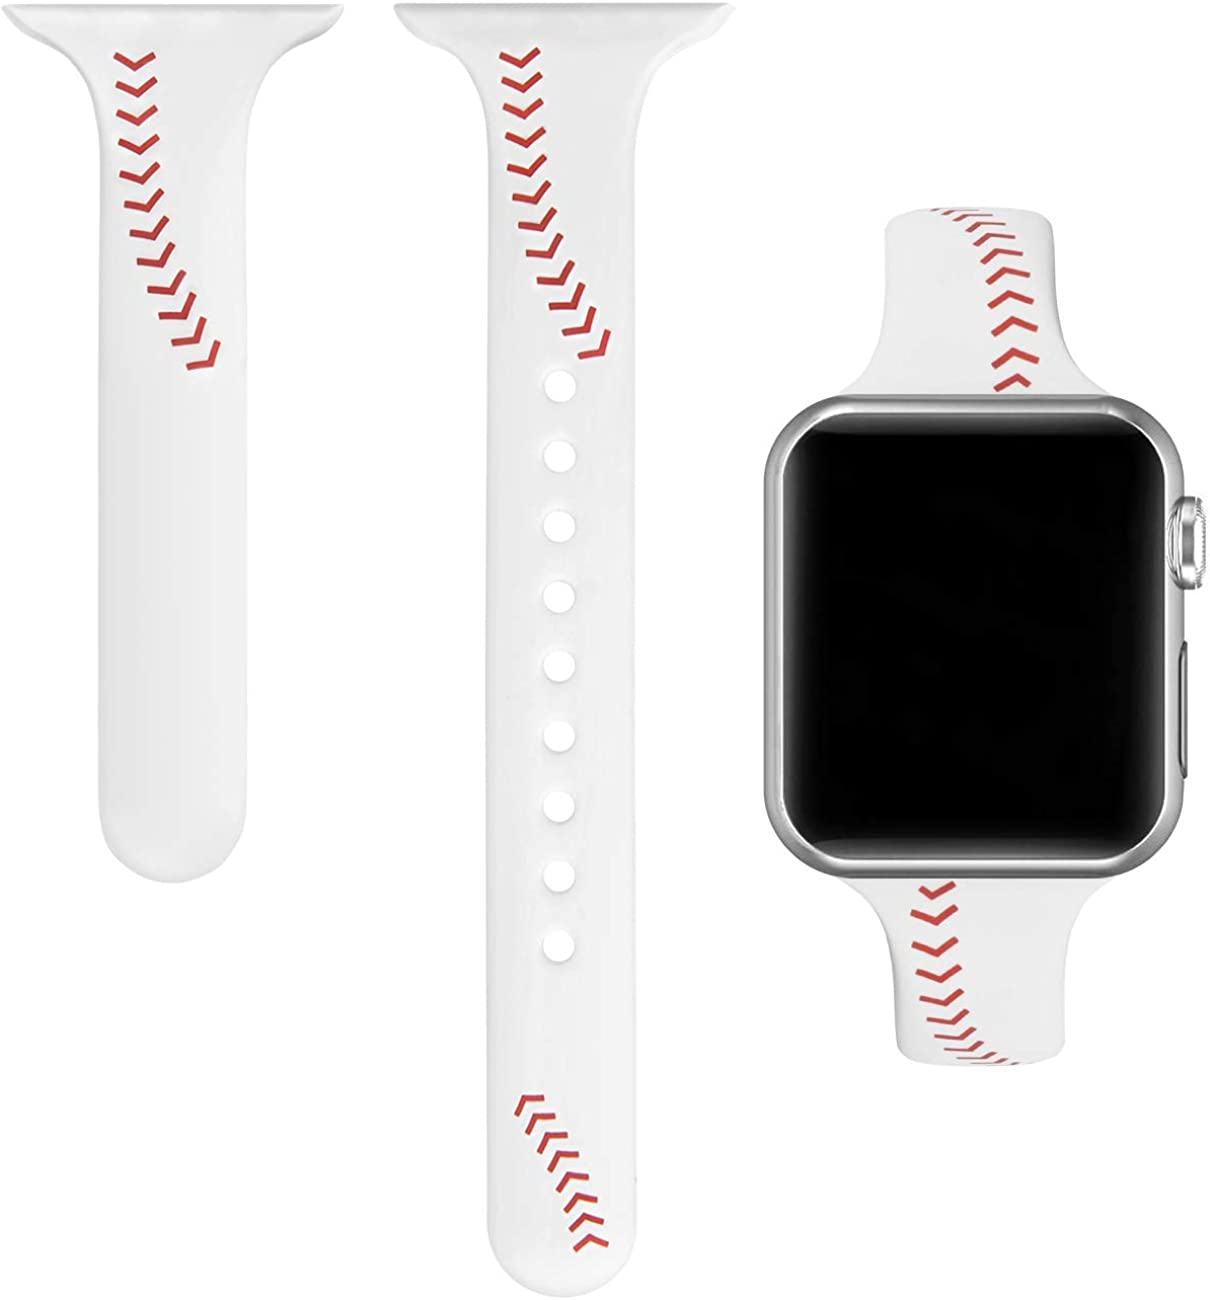 Yutior Sport Band Compatible with iWatch 38mm 40mm 42mm 44mm, Slim Soft Silicone Men Women Large Small Wristbands Baseball Strap for iWatch Series 5, 4, 3, 2, 1 Sport & Edition Black